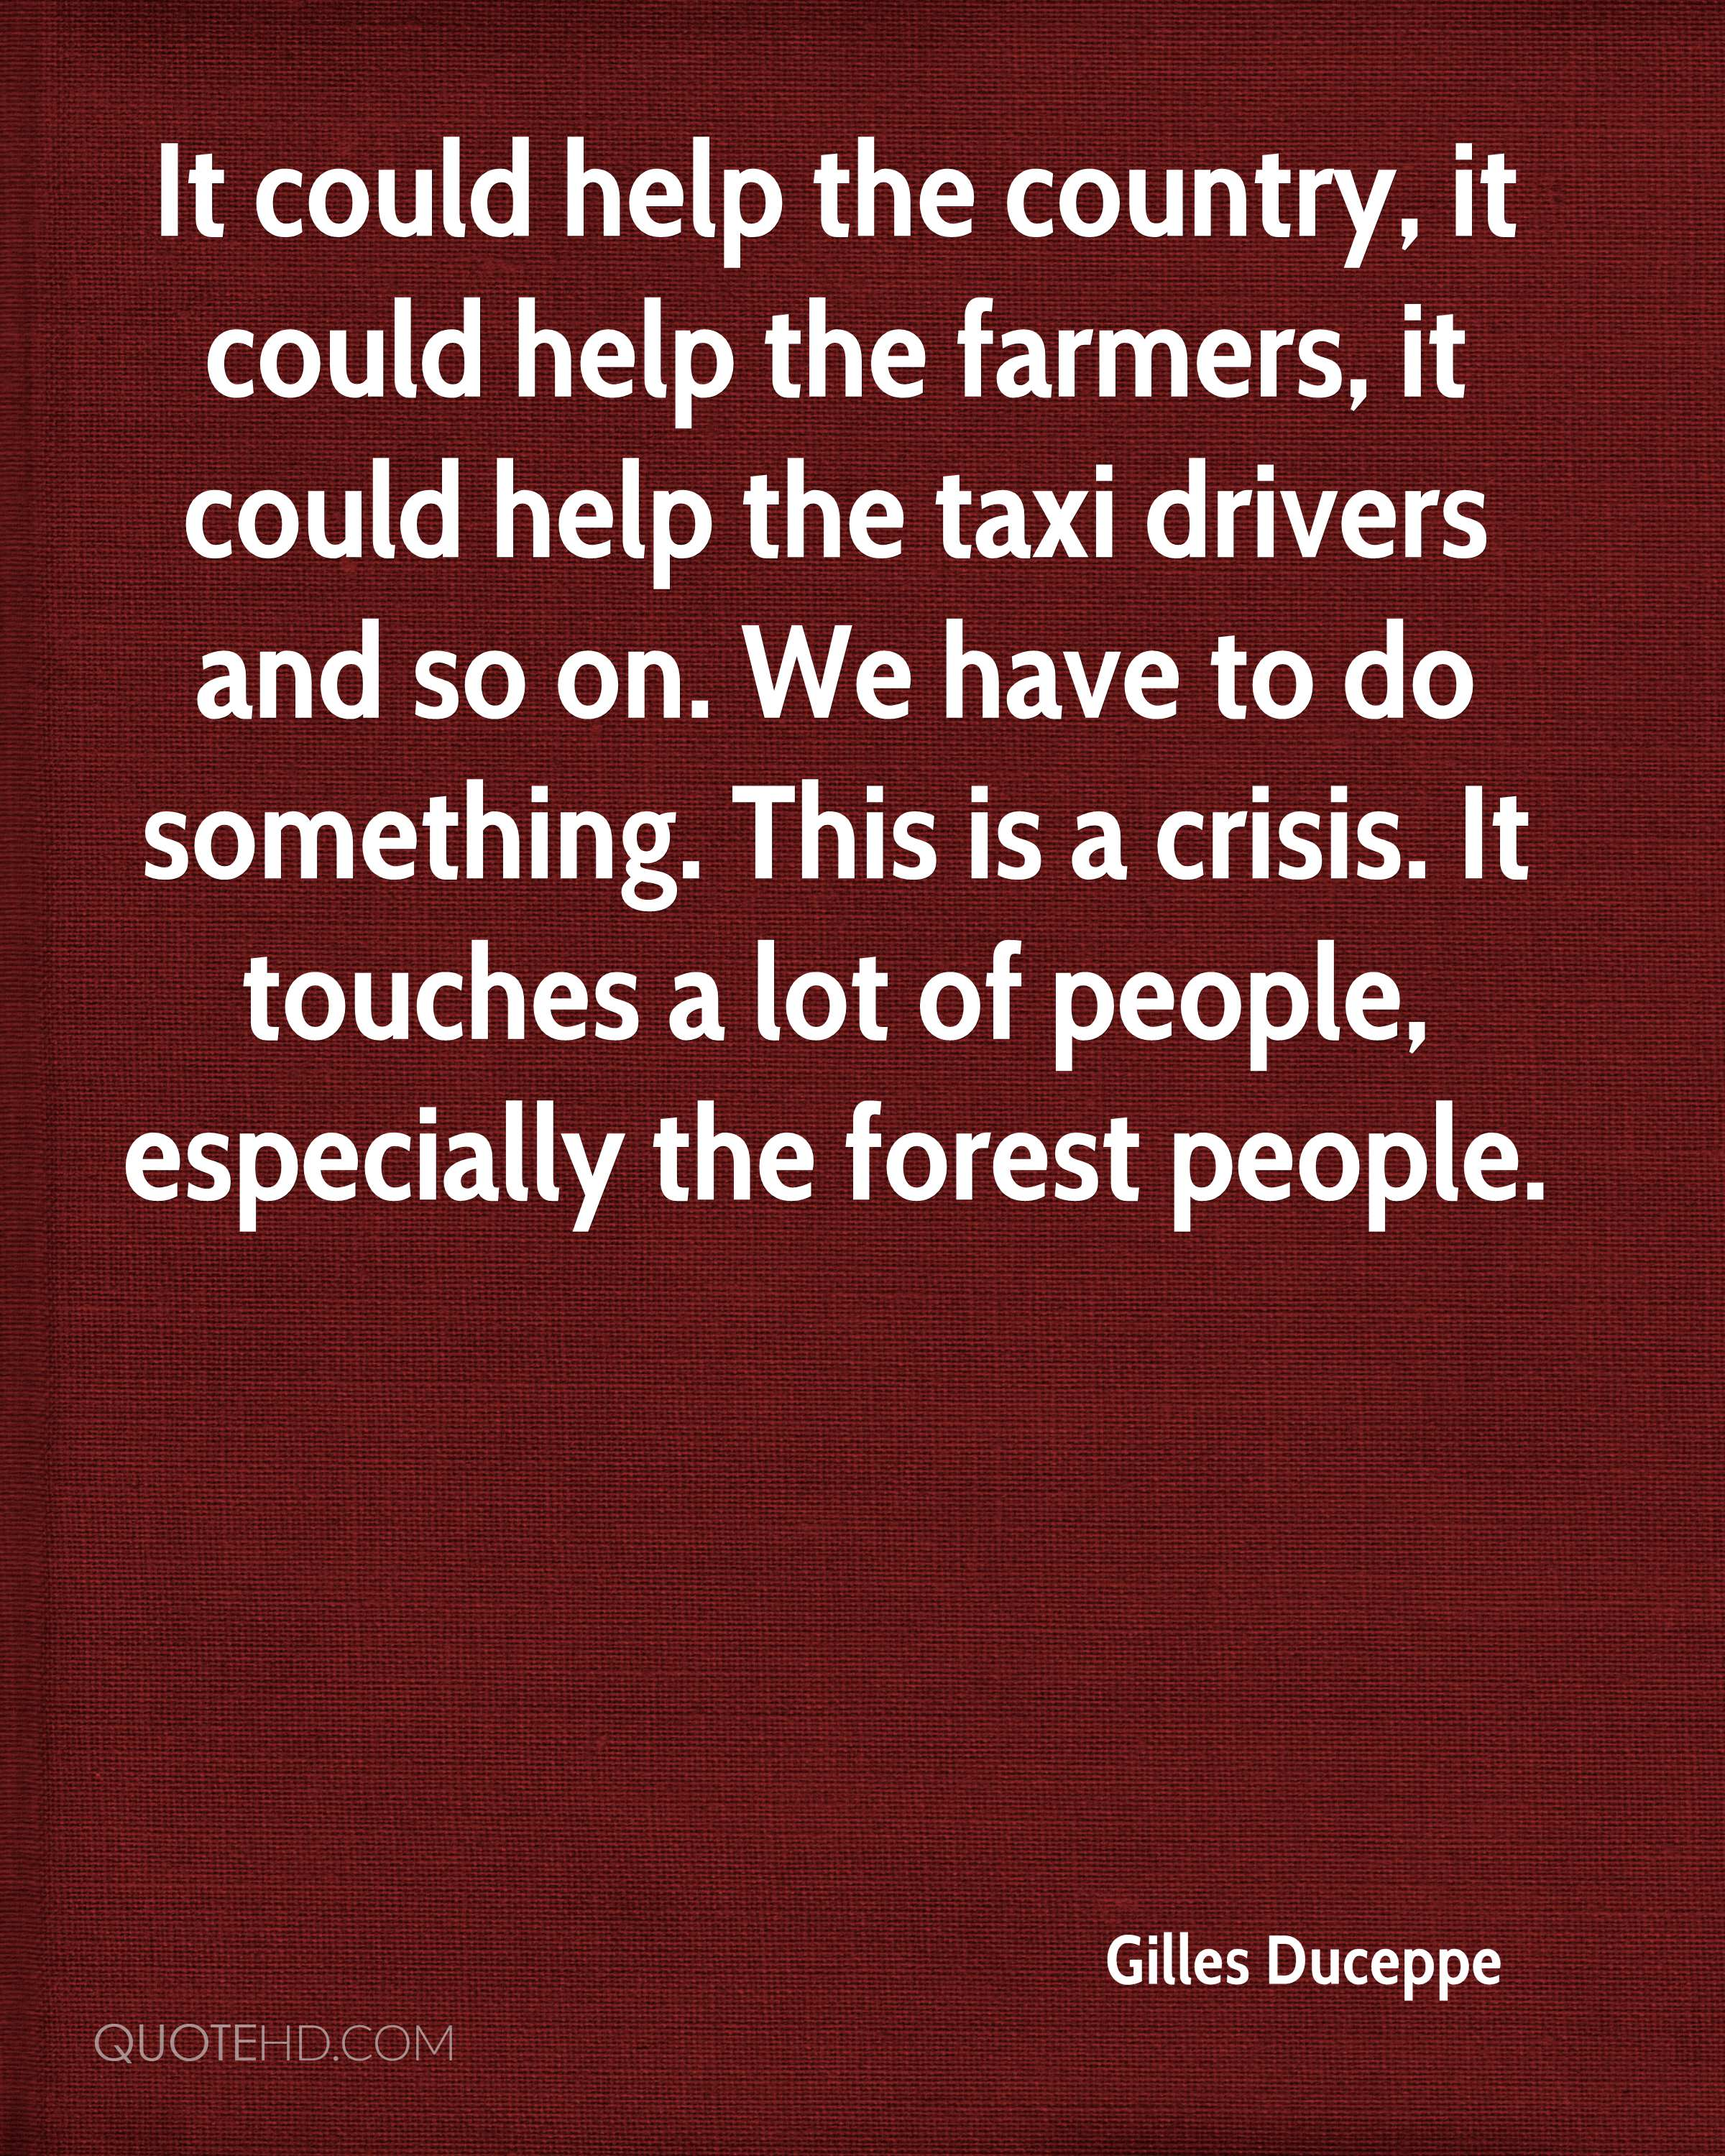 It could help the country, it could help the farmers, it could help the taxi drivers and so on. We have to do something. This is a crisis. It touches a lot of people, especially the forest people.